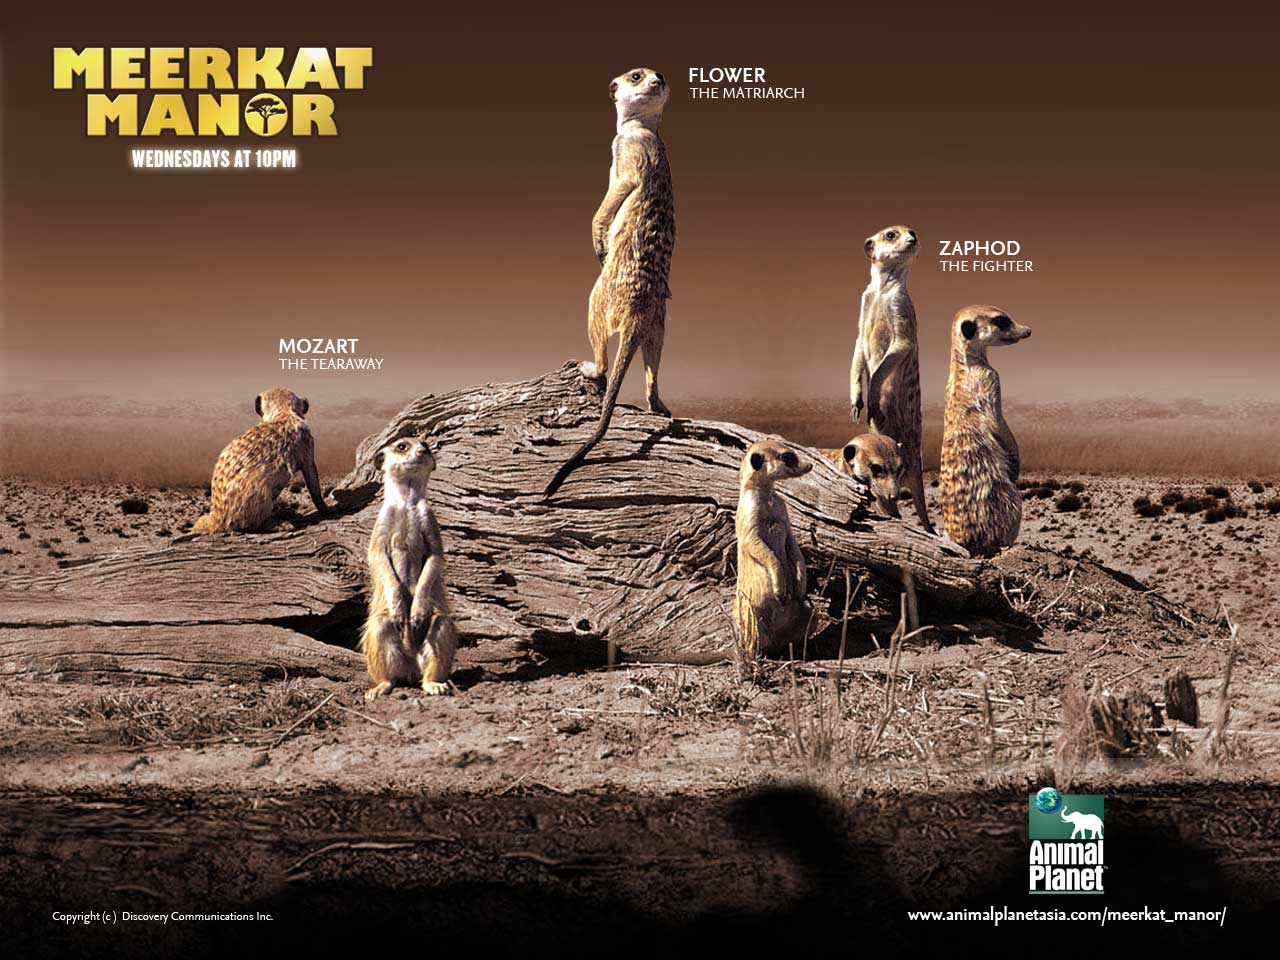 meerkat manor A nature writer suddenly finds himself at the heart of a hot plagiarism scandal.